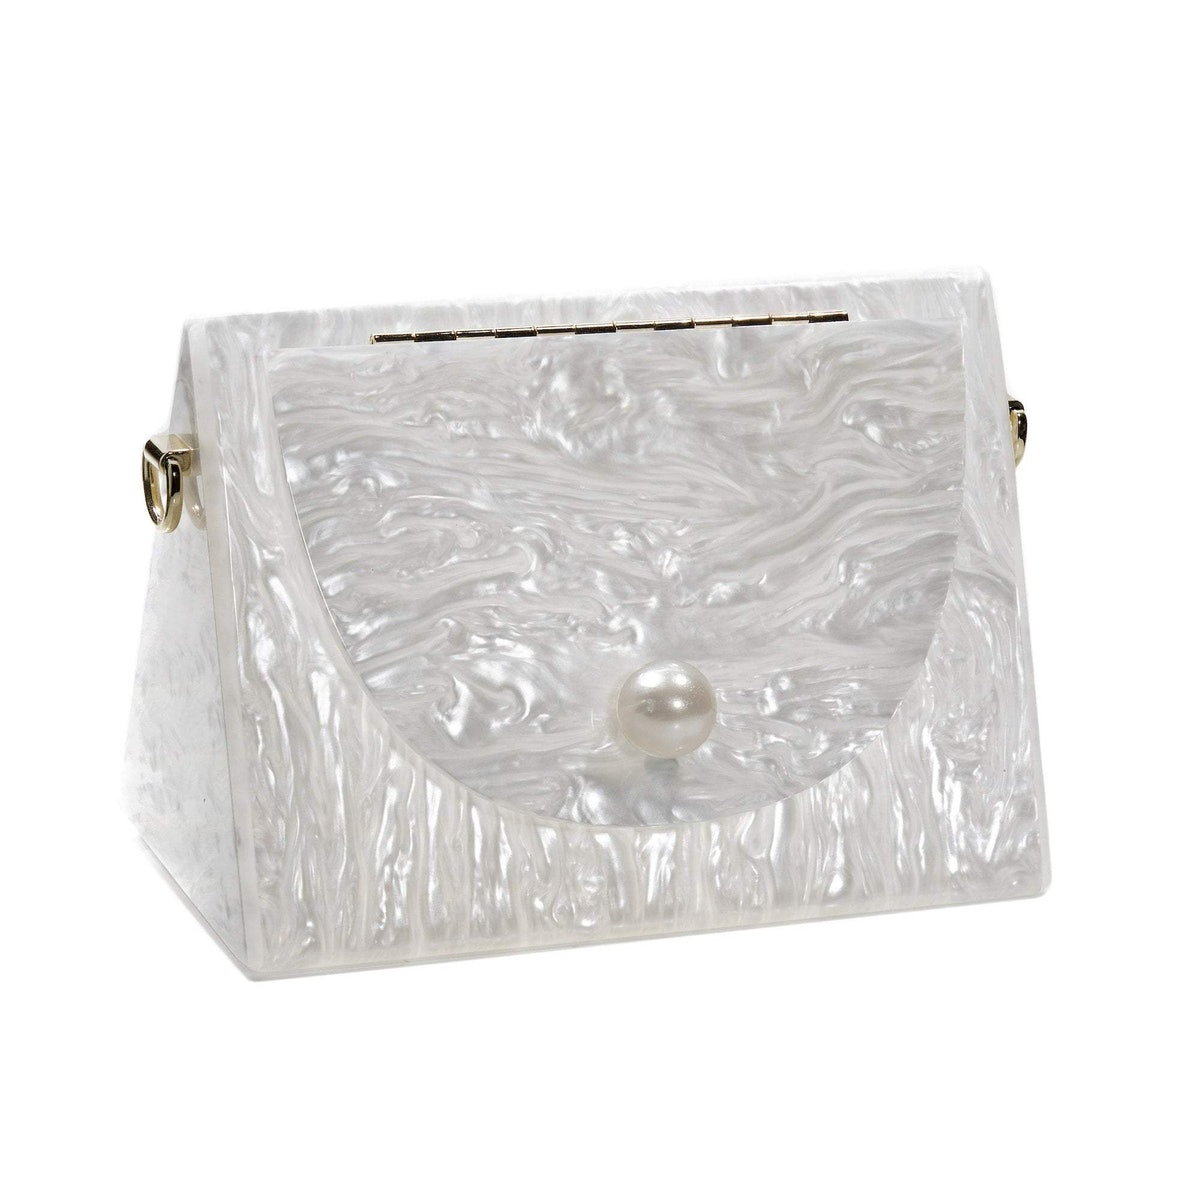 The Brooks Bag in Mother Of Pearl